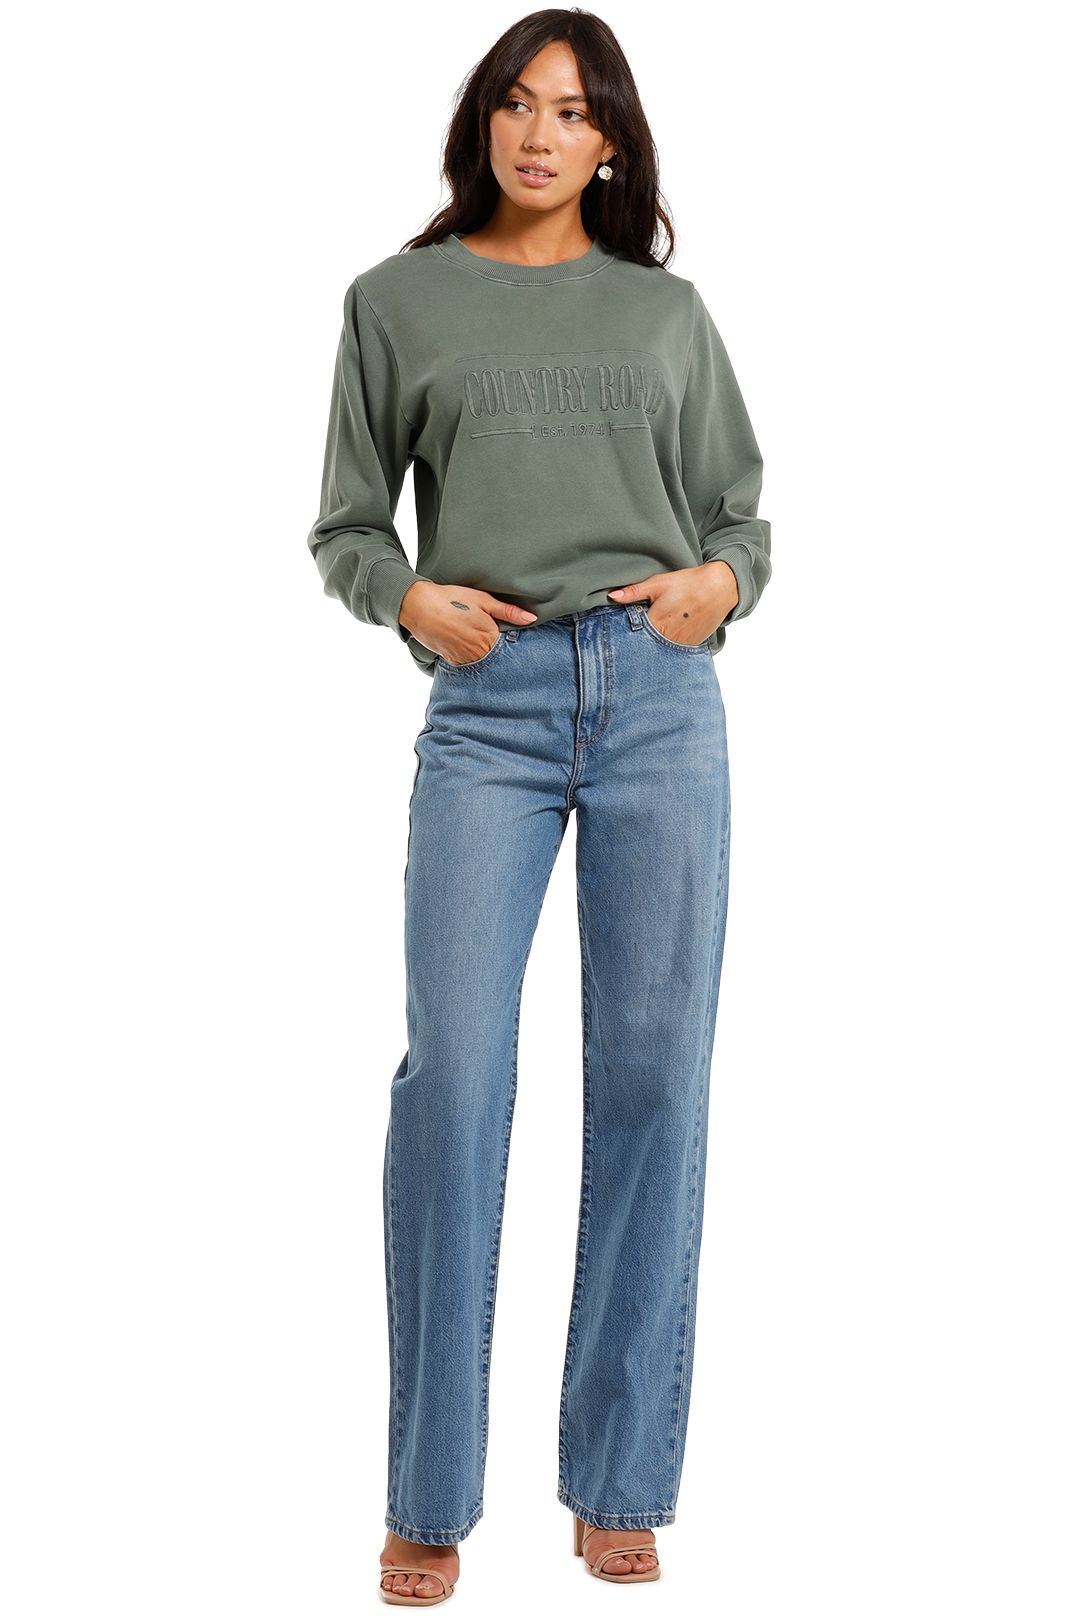 Country Road Heritage Sweat Sage crew